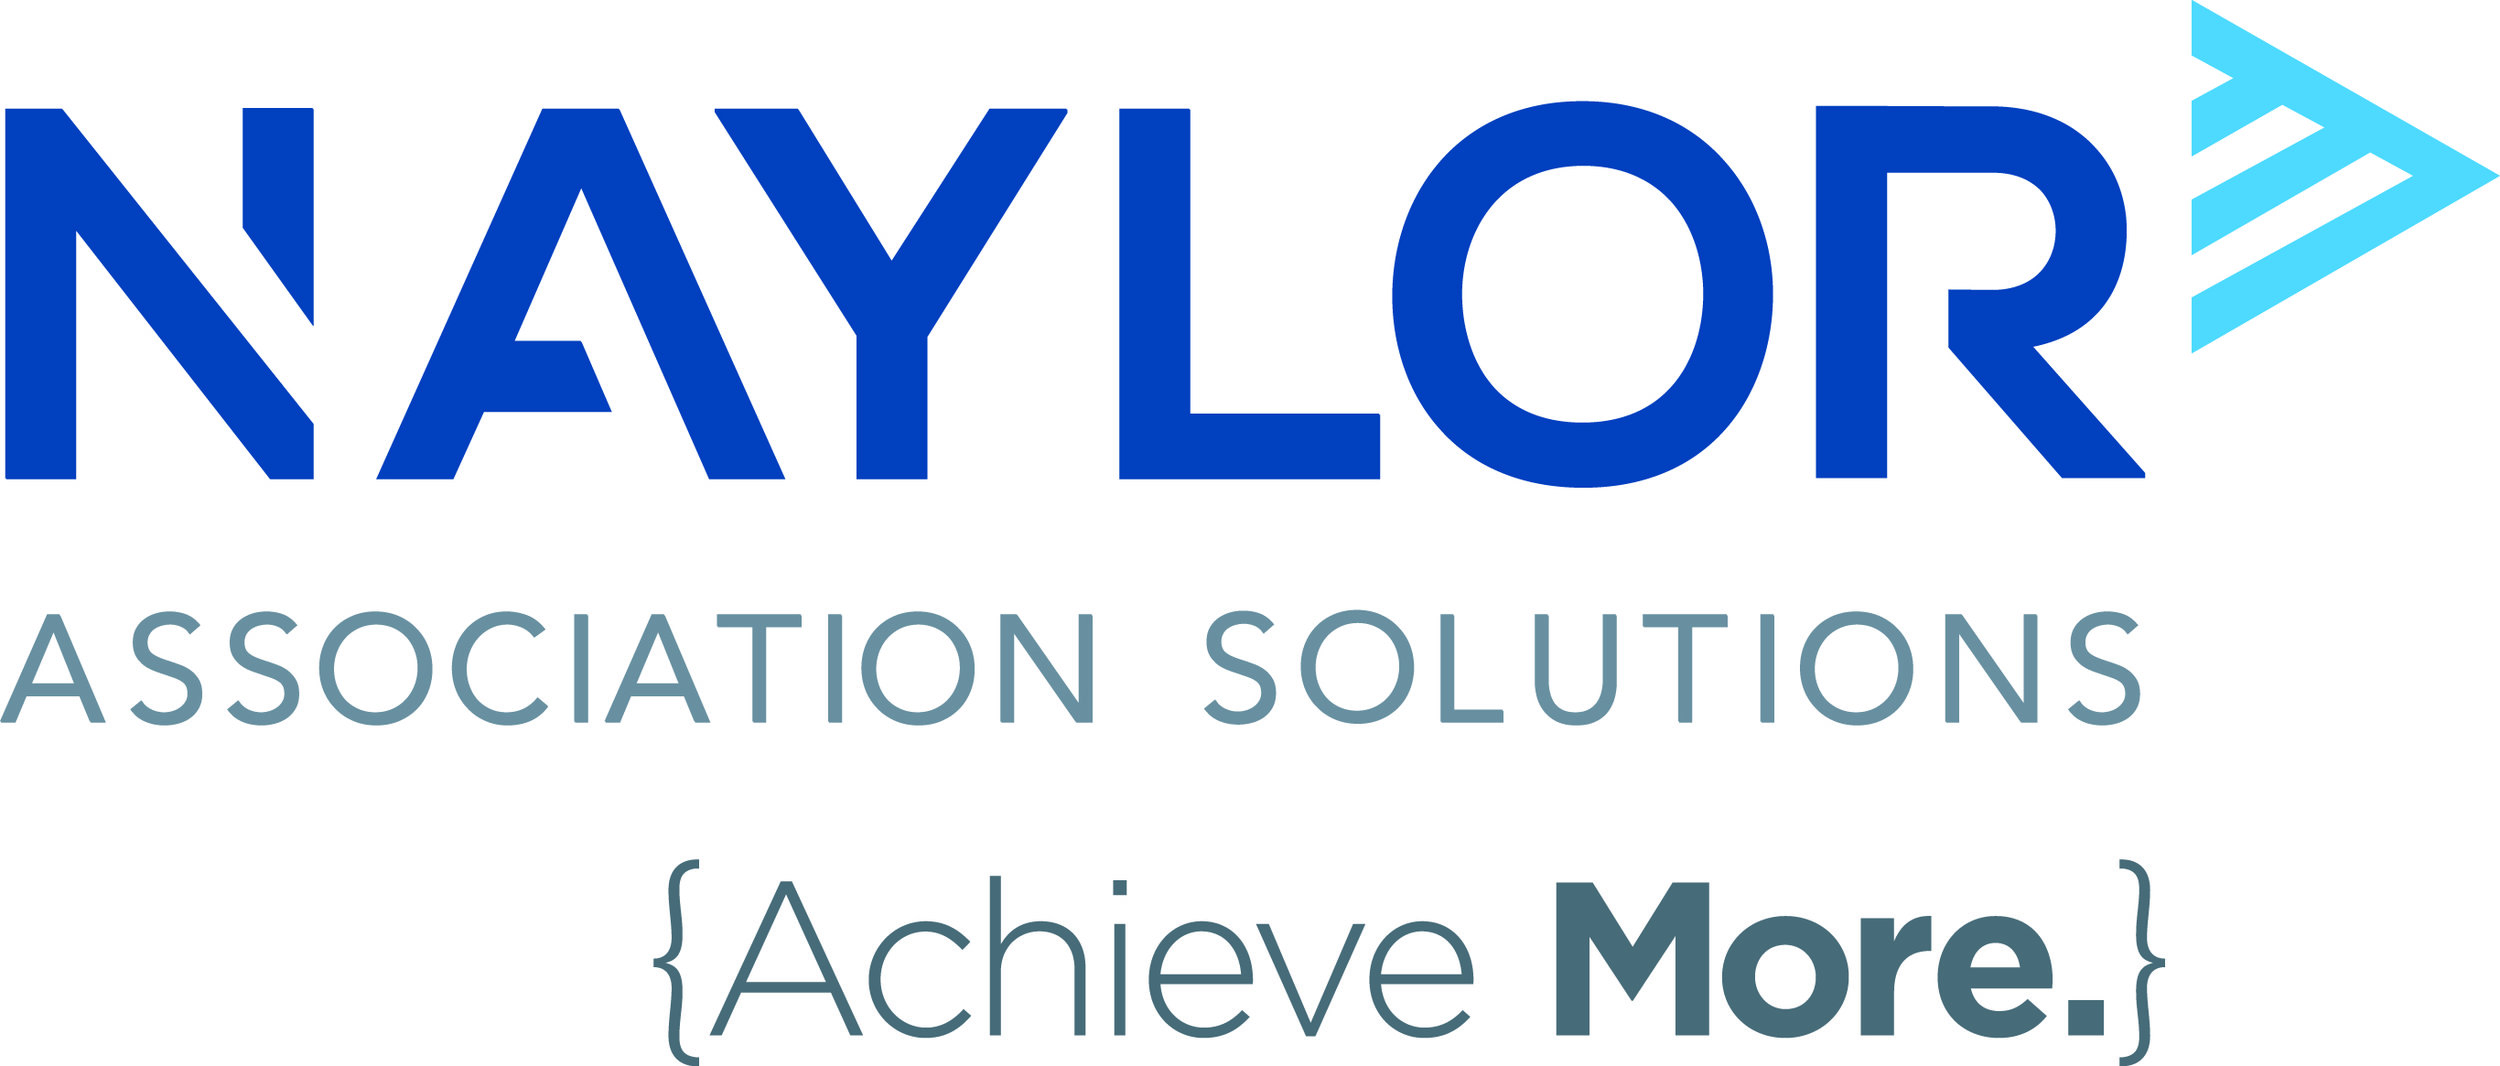 NAYLOR-AS_ACHIEVE_MORE-4C.jpg